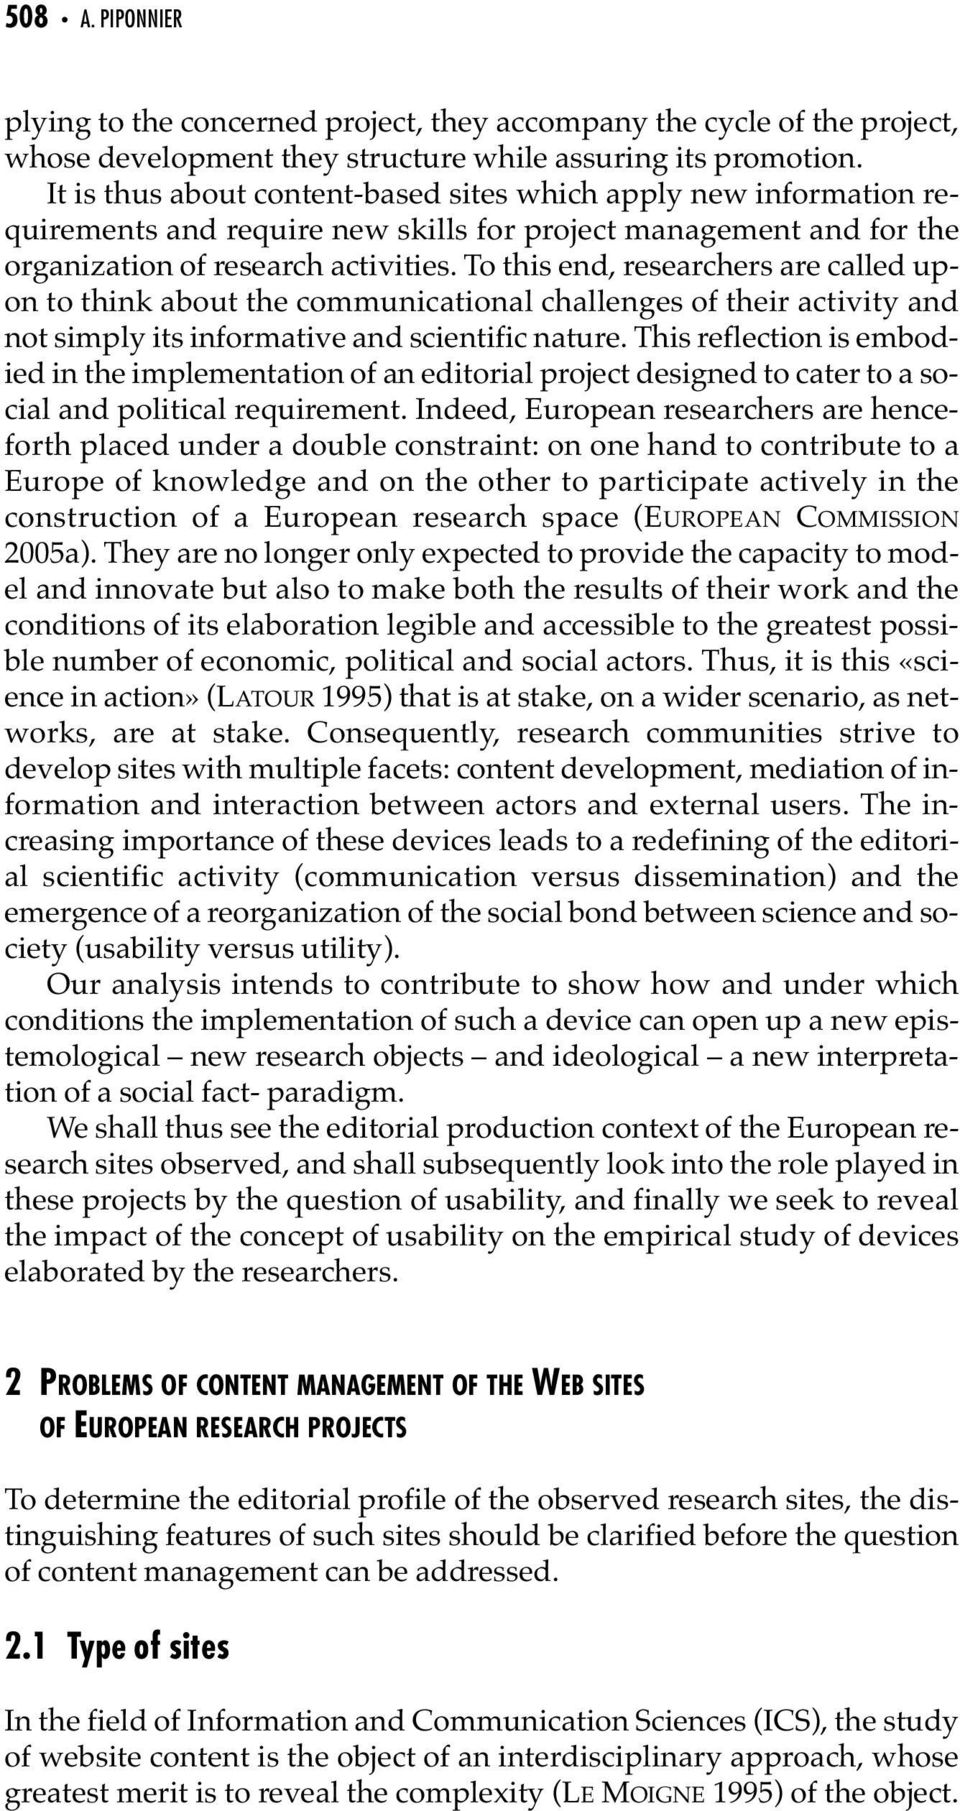 To this end, researchers are called upon to think about the communicational challenges of their activity and not simply its informative and scientific nature.